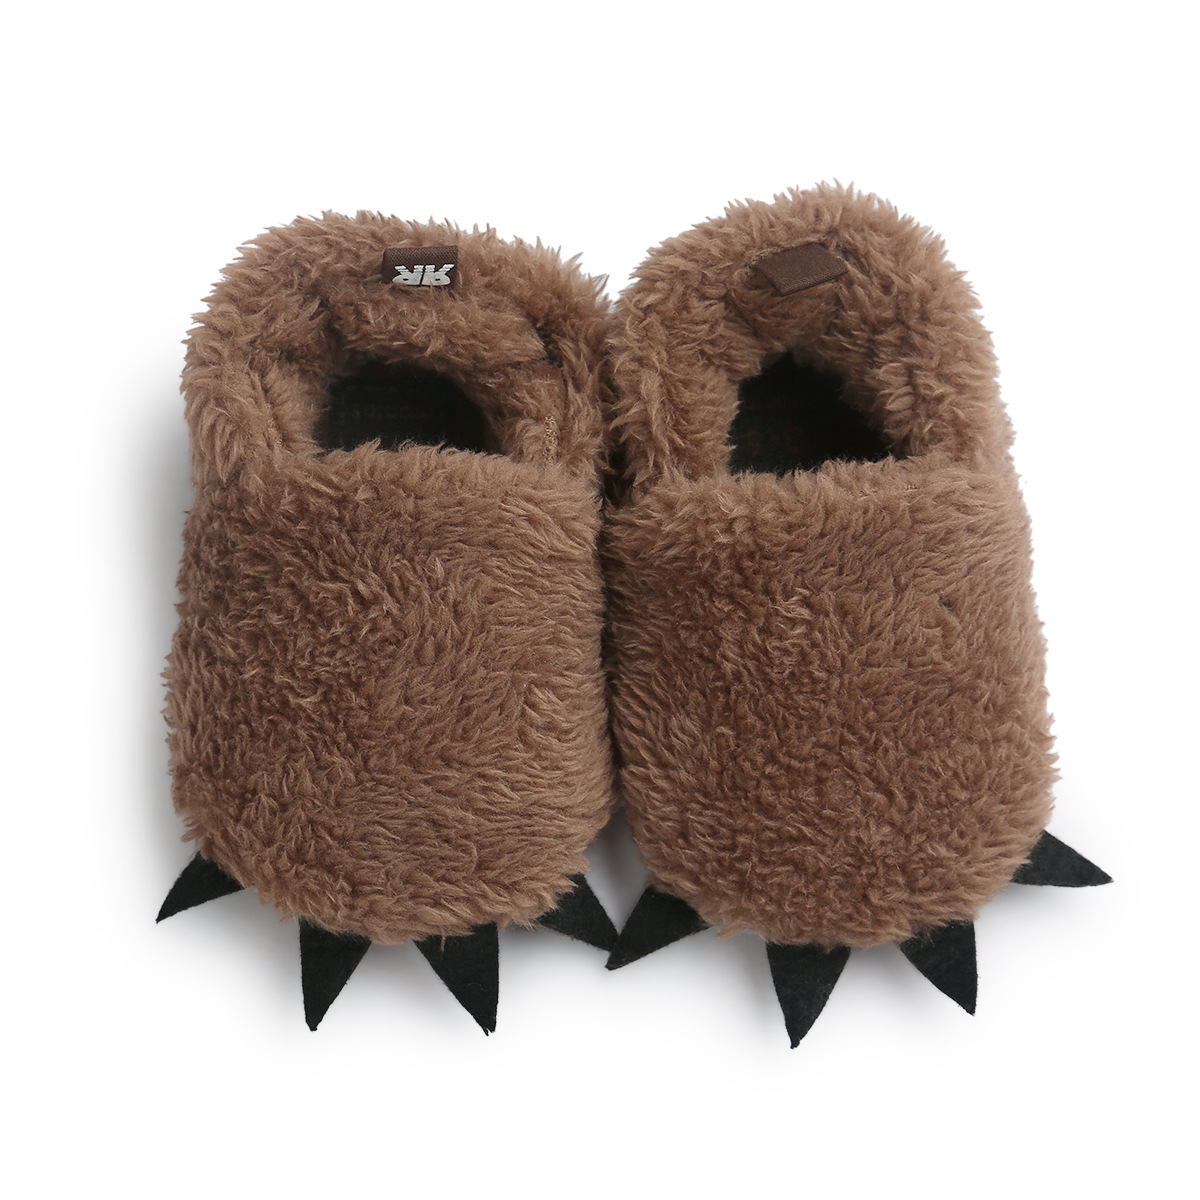 New Animal Paw Newborn Baby Shoes Winter Bebe Booties Infant First Walkers Photo Props Accessories Baby Clothing Sock Shoes